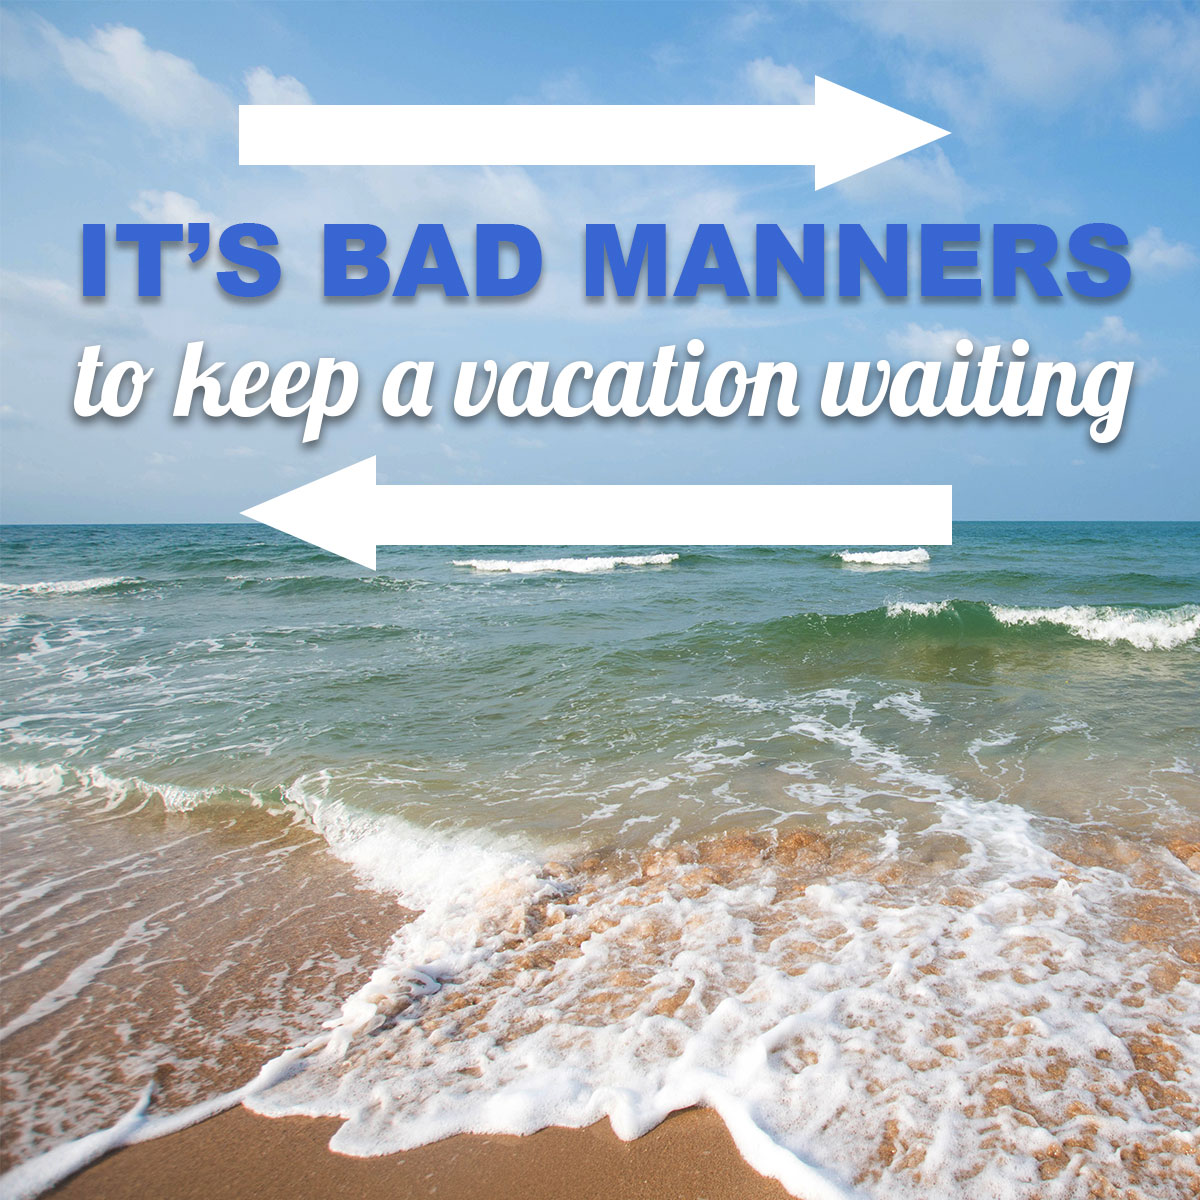 It's bad manners to keep a vacation waiting